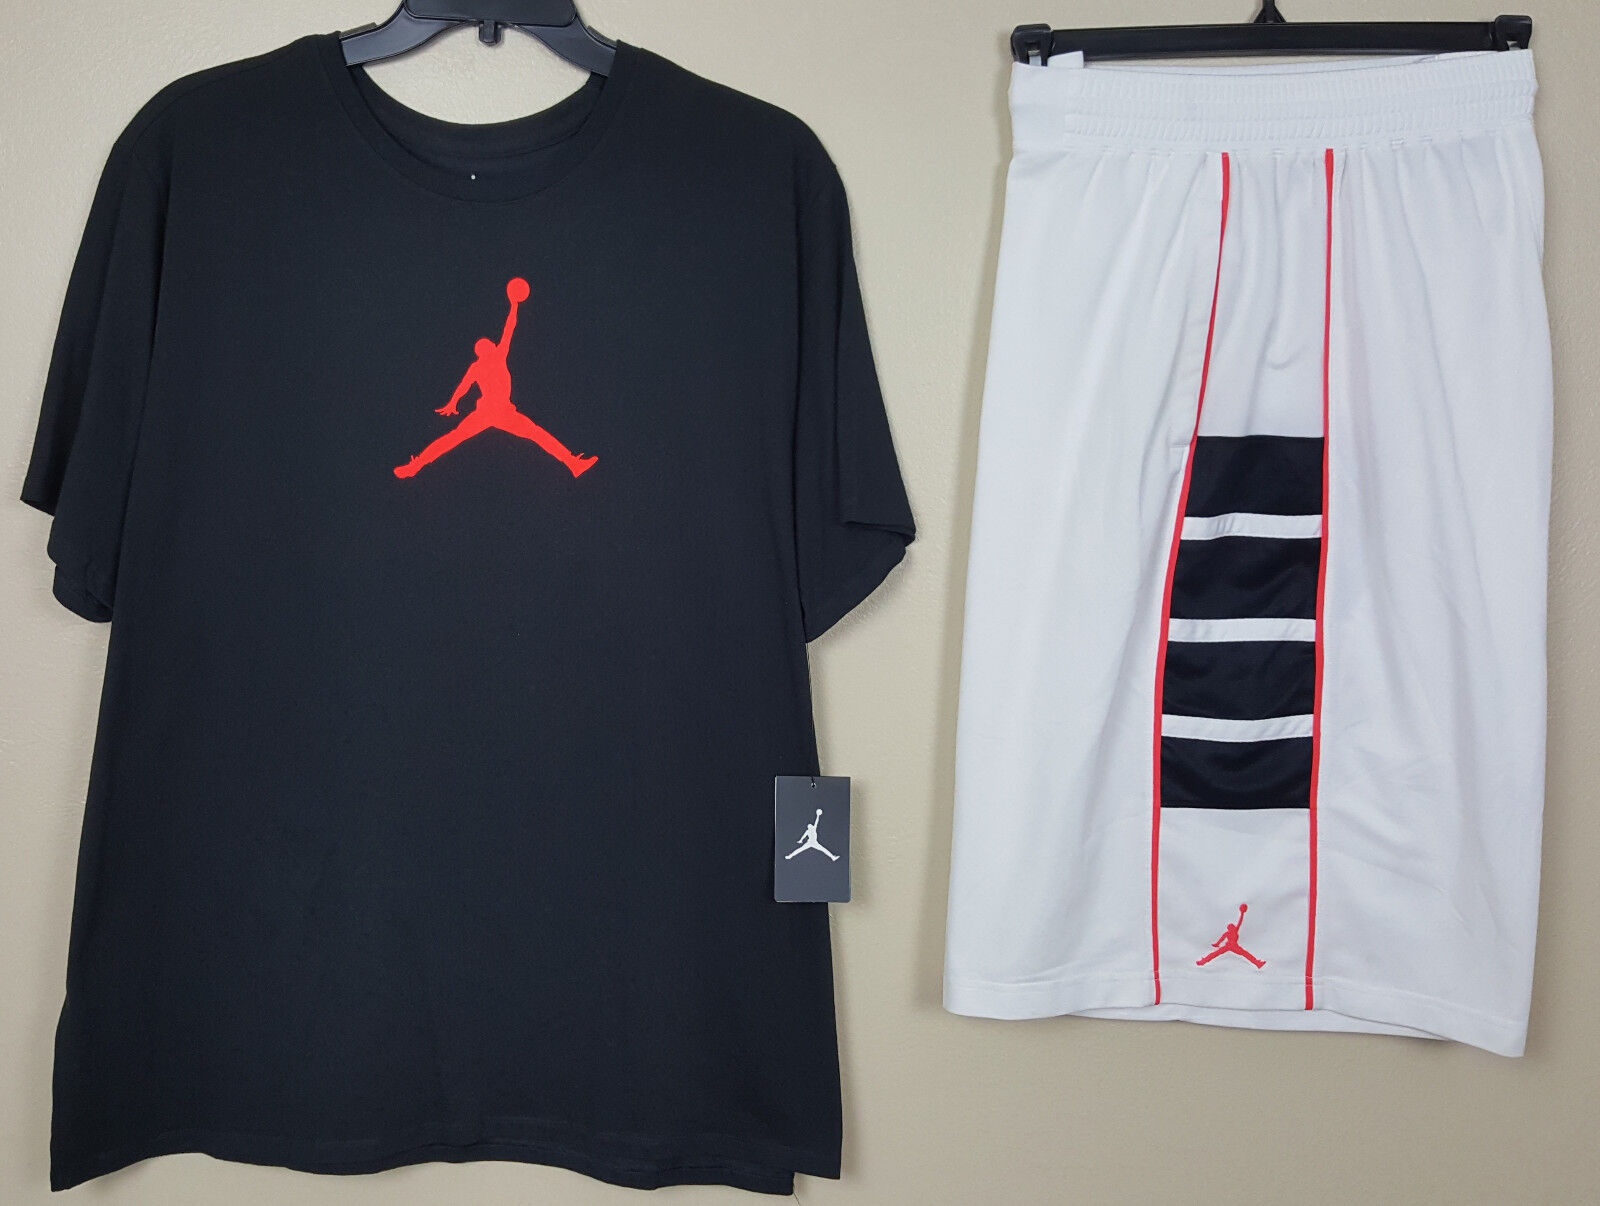 NIKE AIR JORDAN VI RETRO 6 OUTFIT SHIRT + SHORTS BLACK INFRARED RARE (SIZE 3XL)